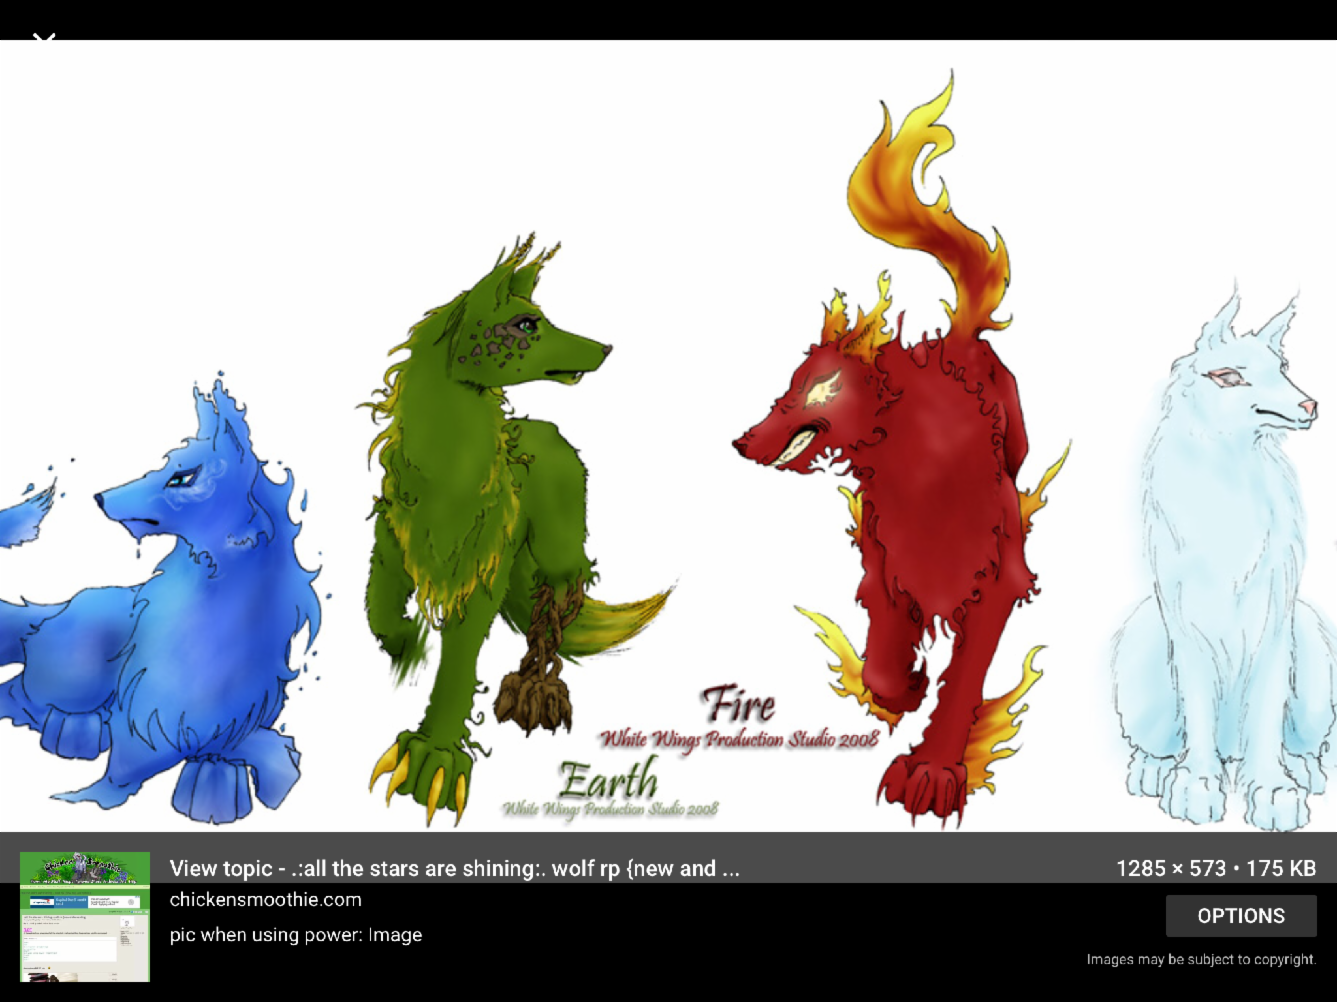 What elemental wolf are you?